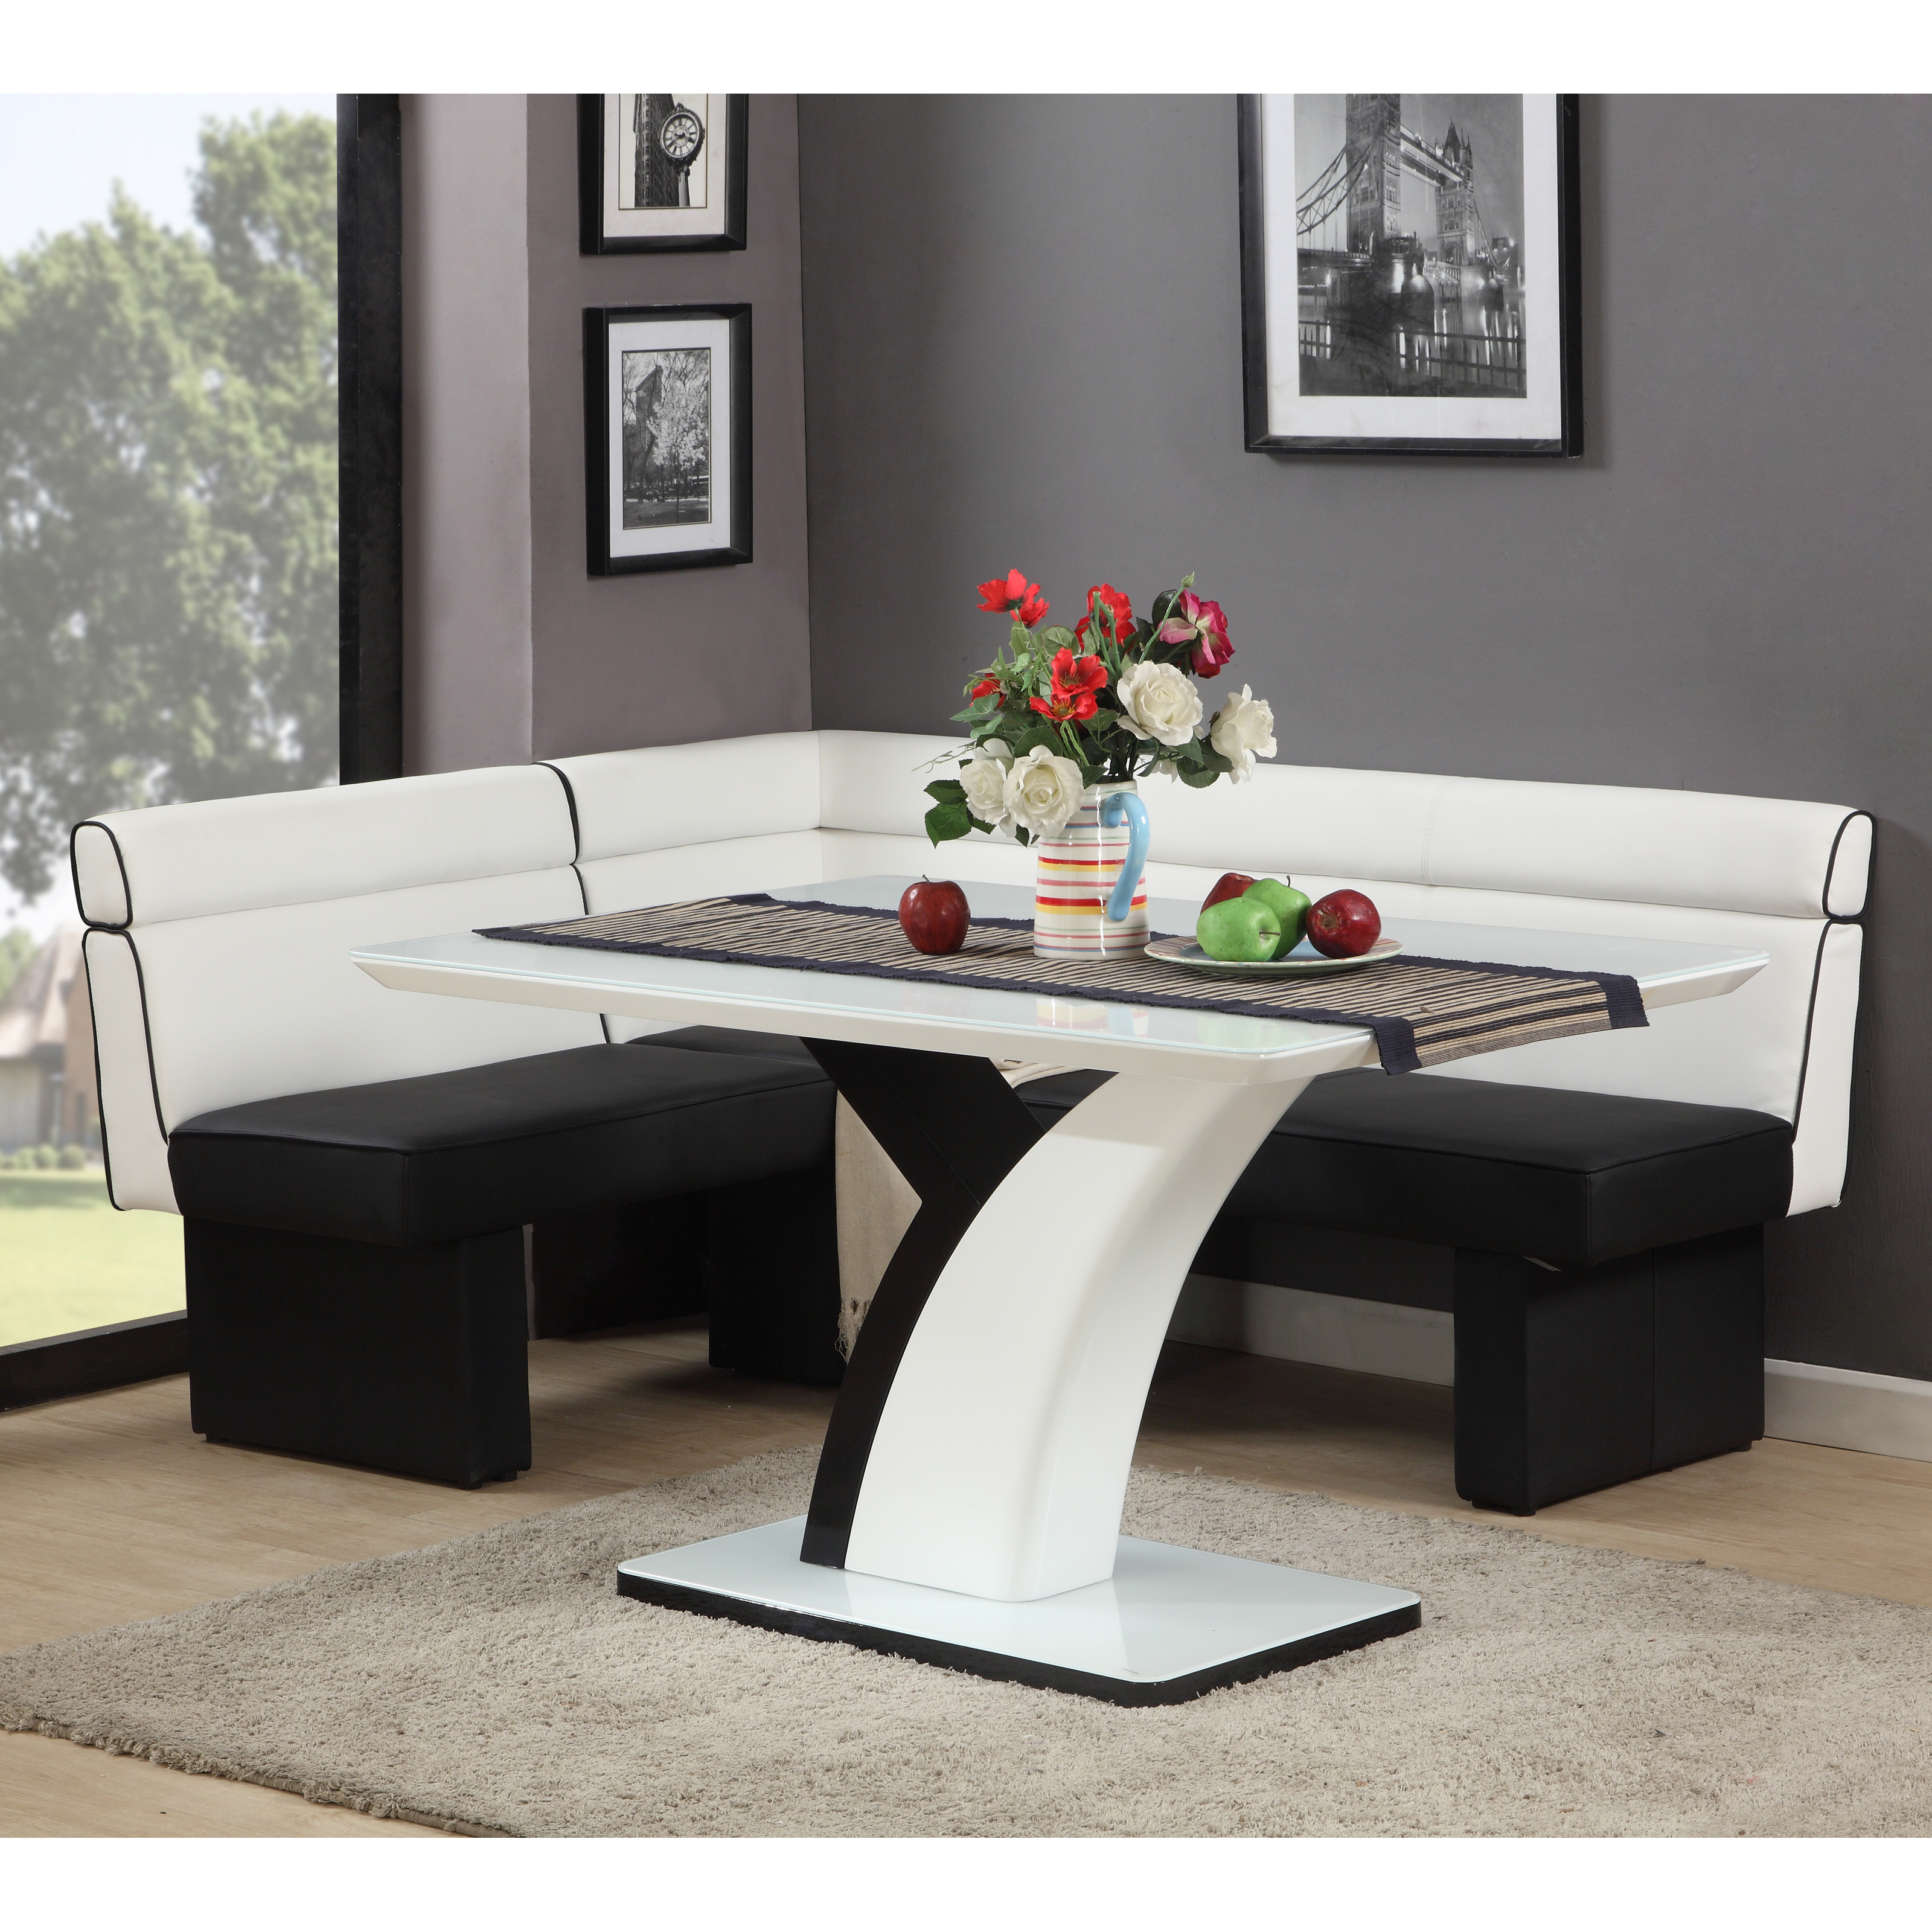 Corner Bench Kitchen Table Set A Kitchen And Dining Nook: Chintaly Natasha Nook Dining Set